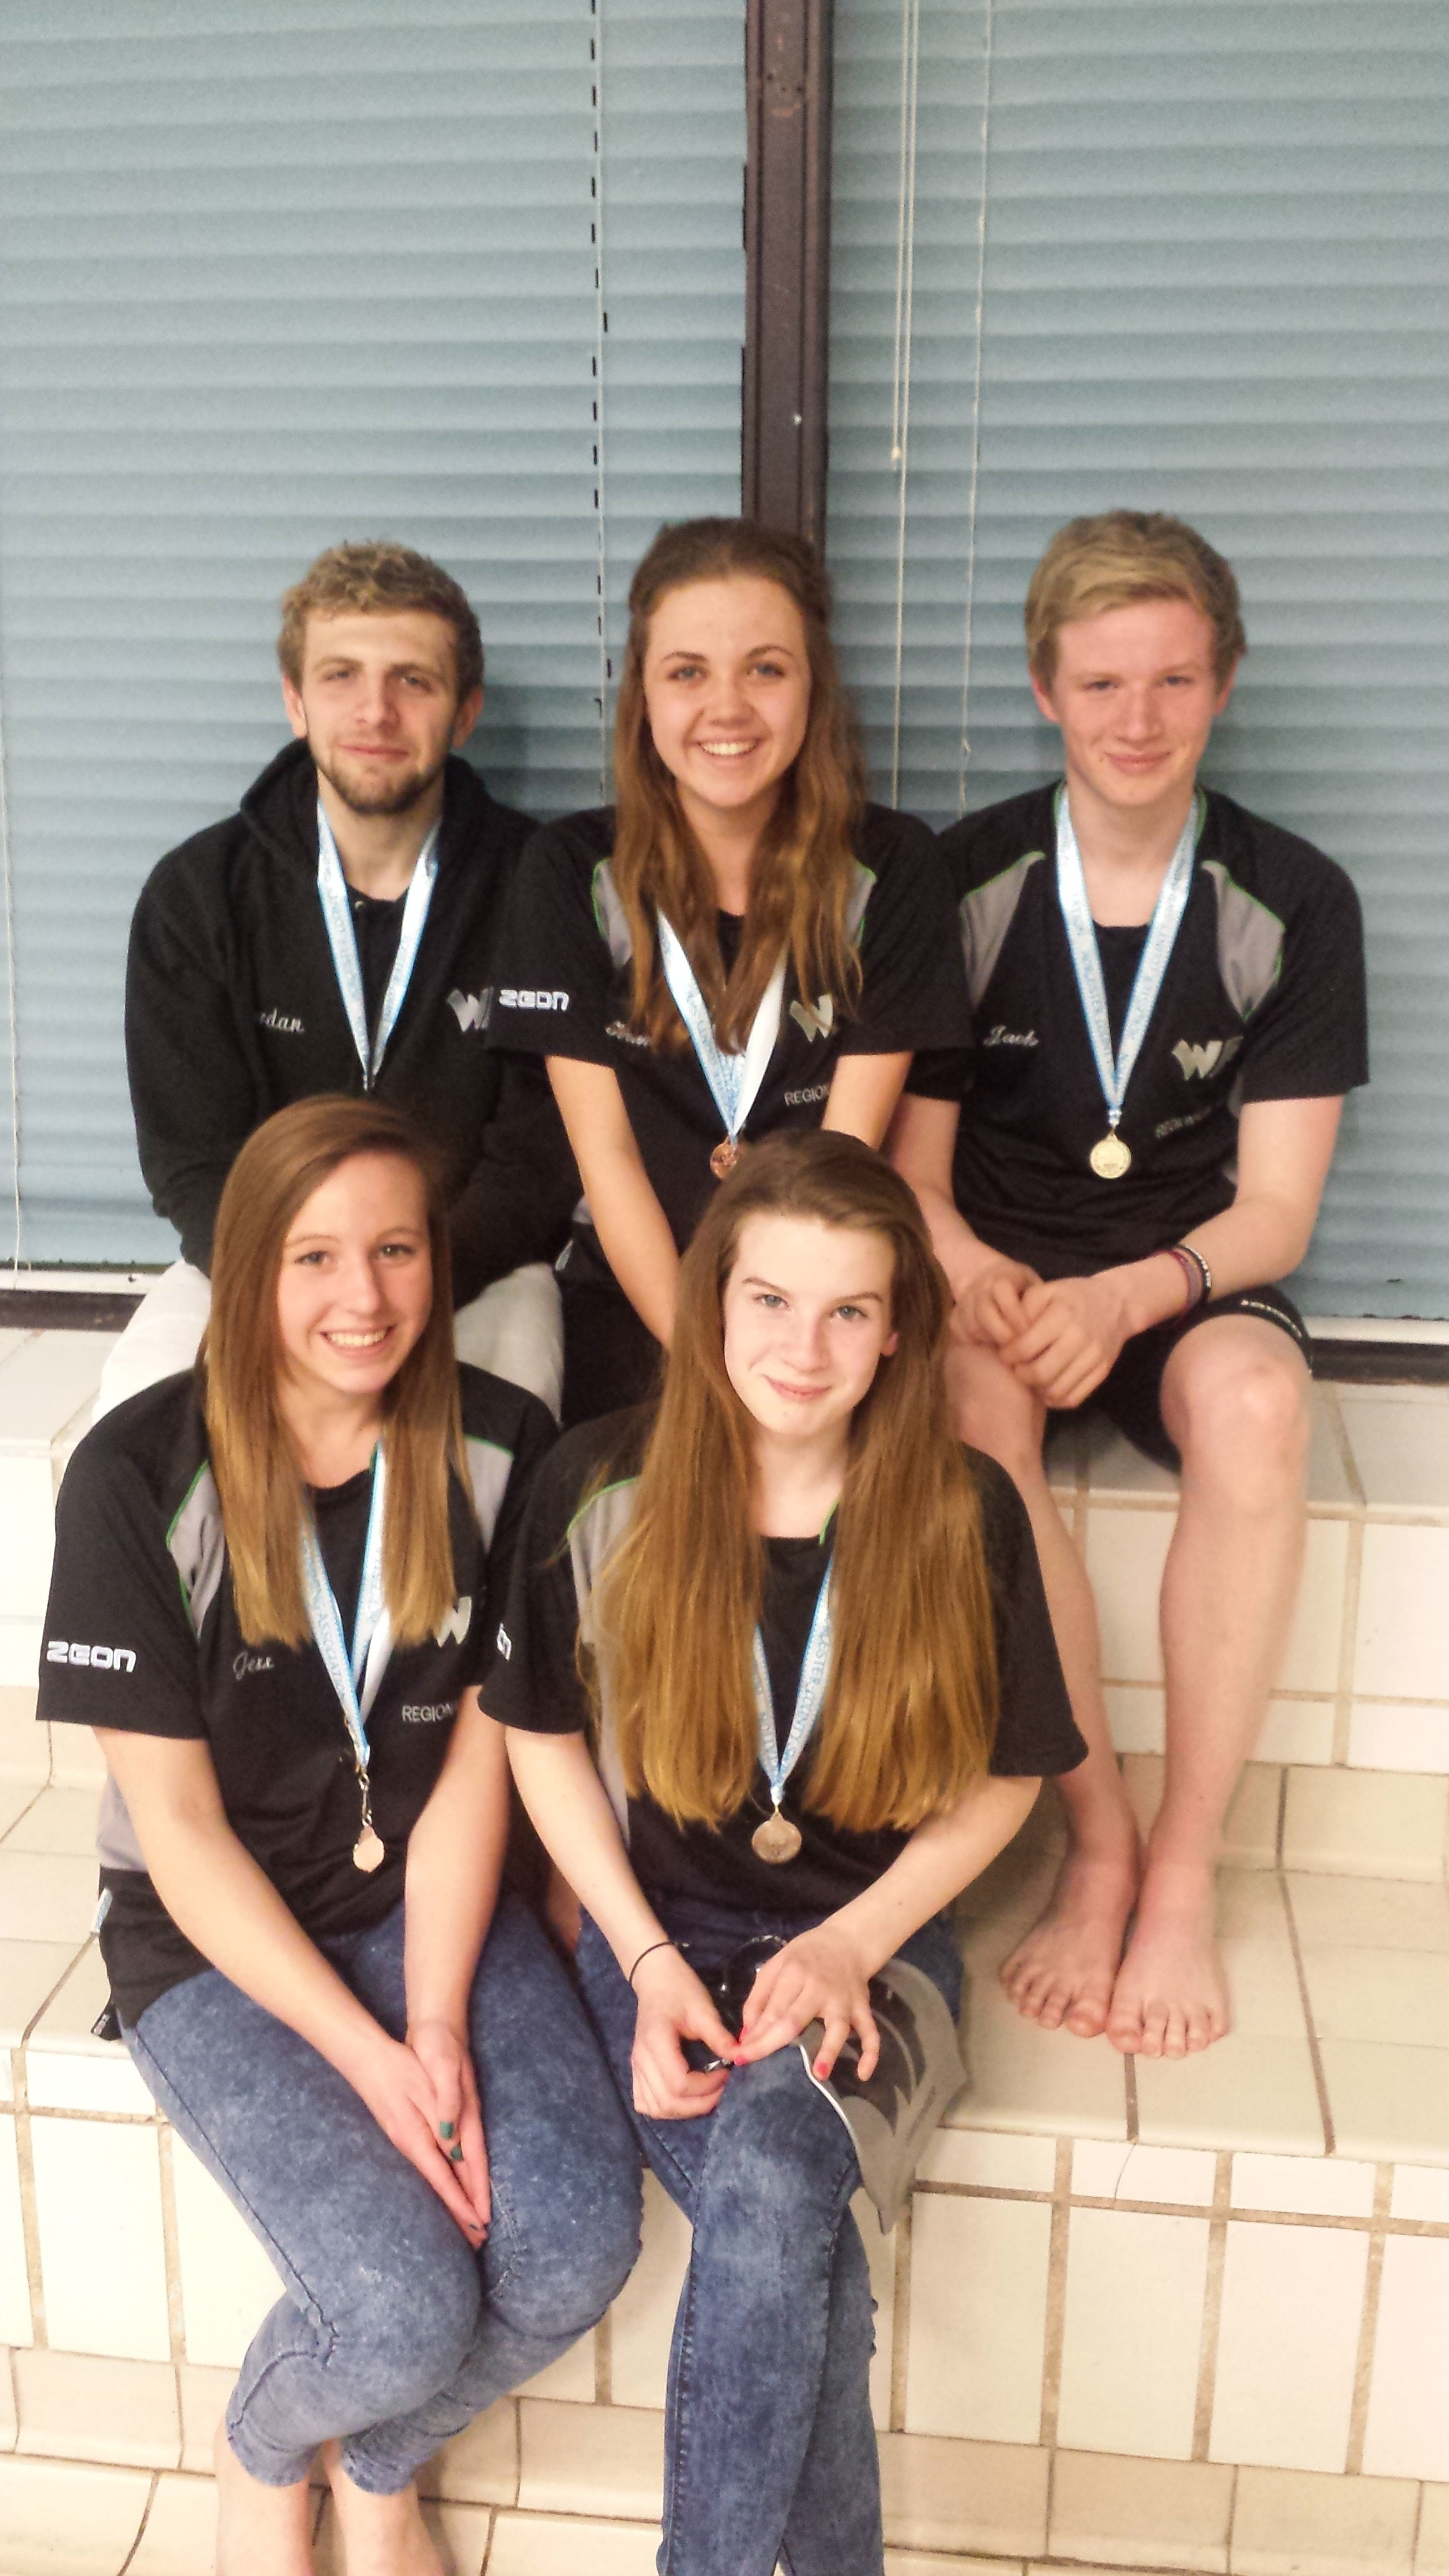 Jordan Chappell, Helena Shackleton, Jack Rowley, Jess Lewis and Abbie Rowley.